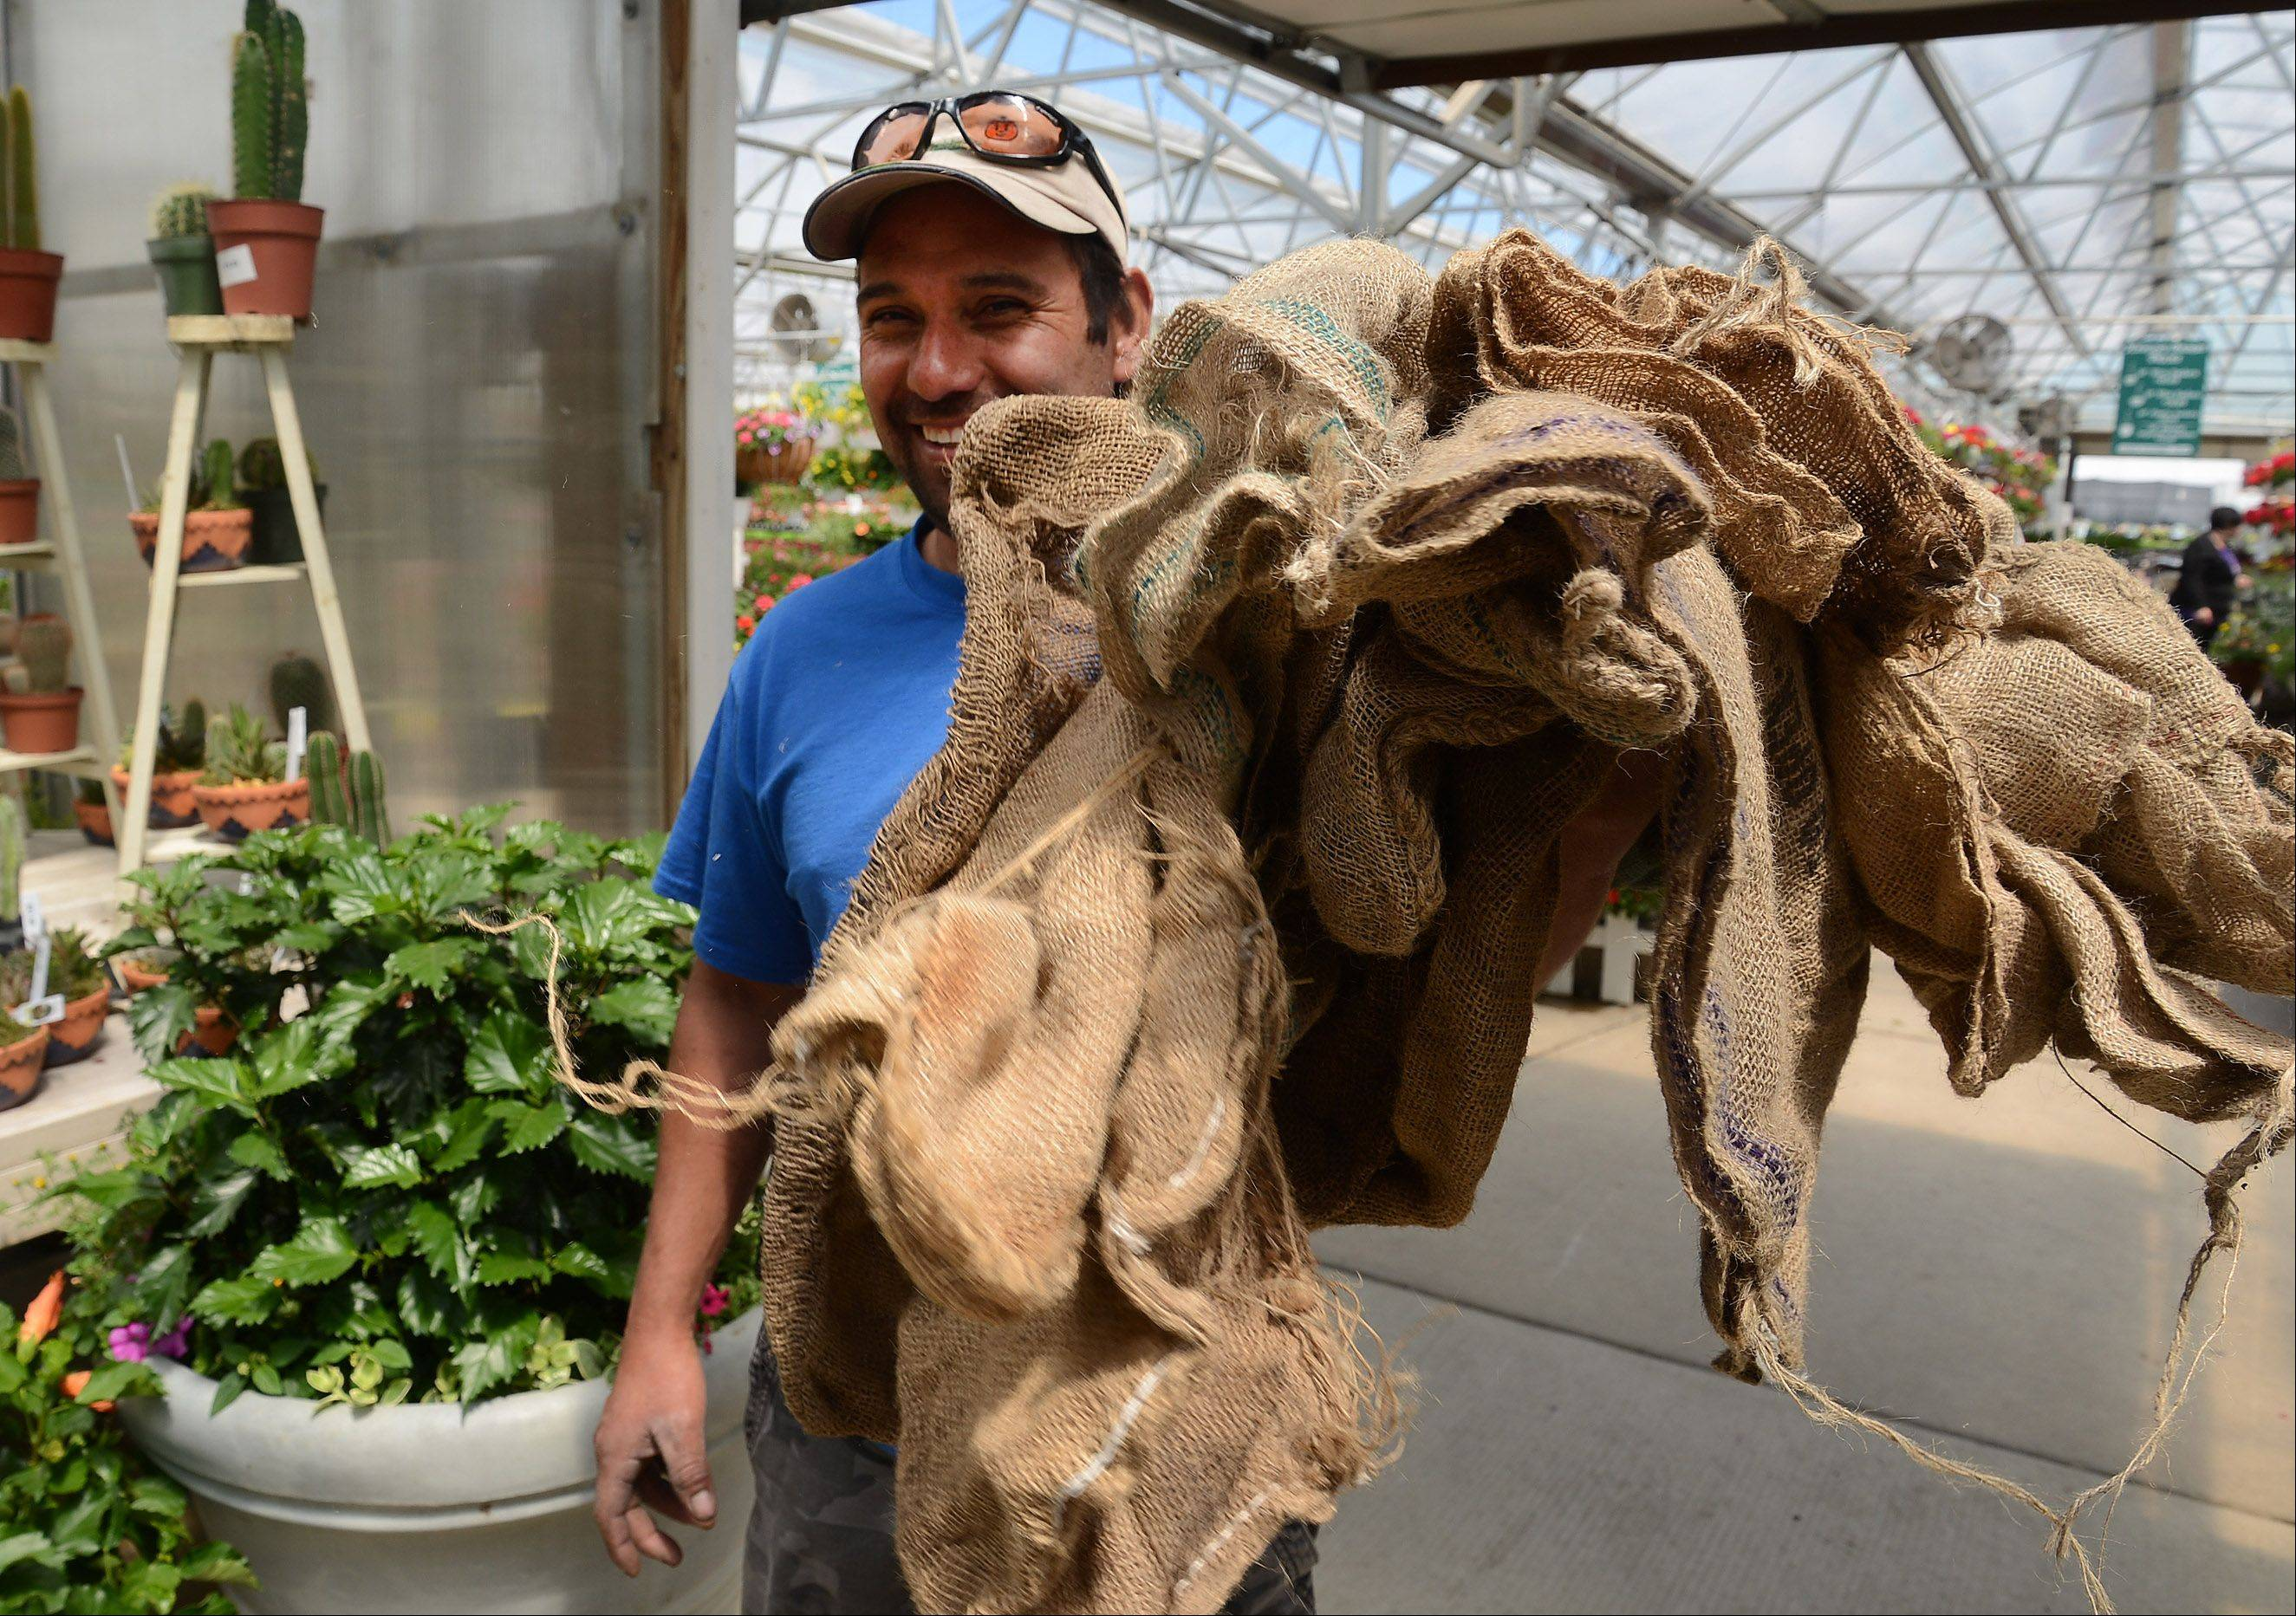 Antonio Rodriguez holds up the burlap sacks he and his crew used to cover the more delicate plants at Goebbert's Farm & Garden Center in South Barrington.